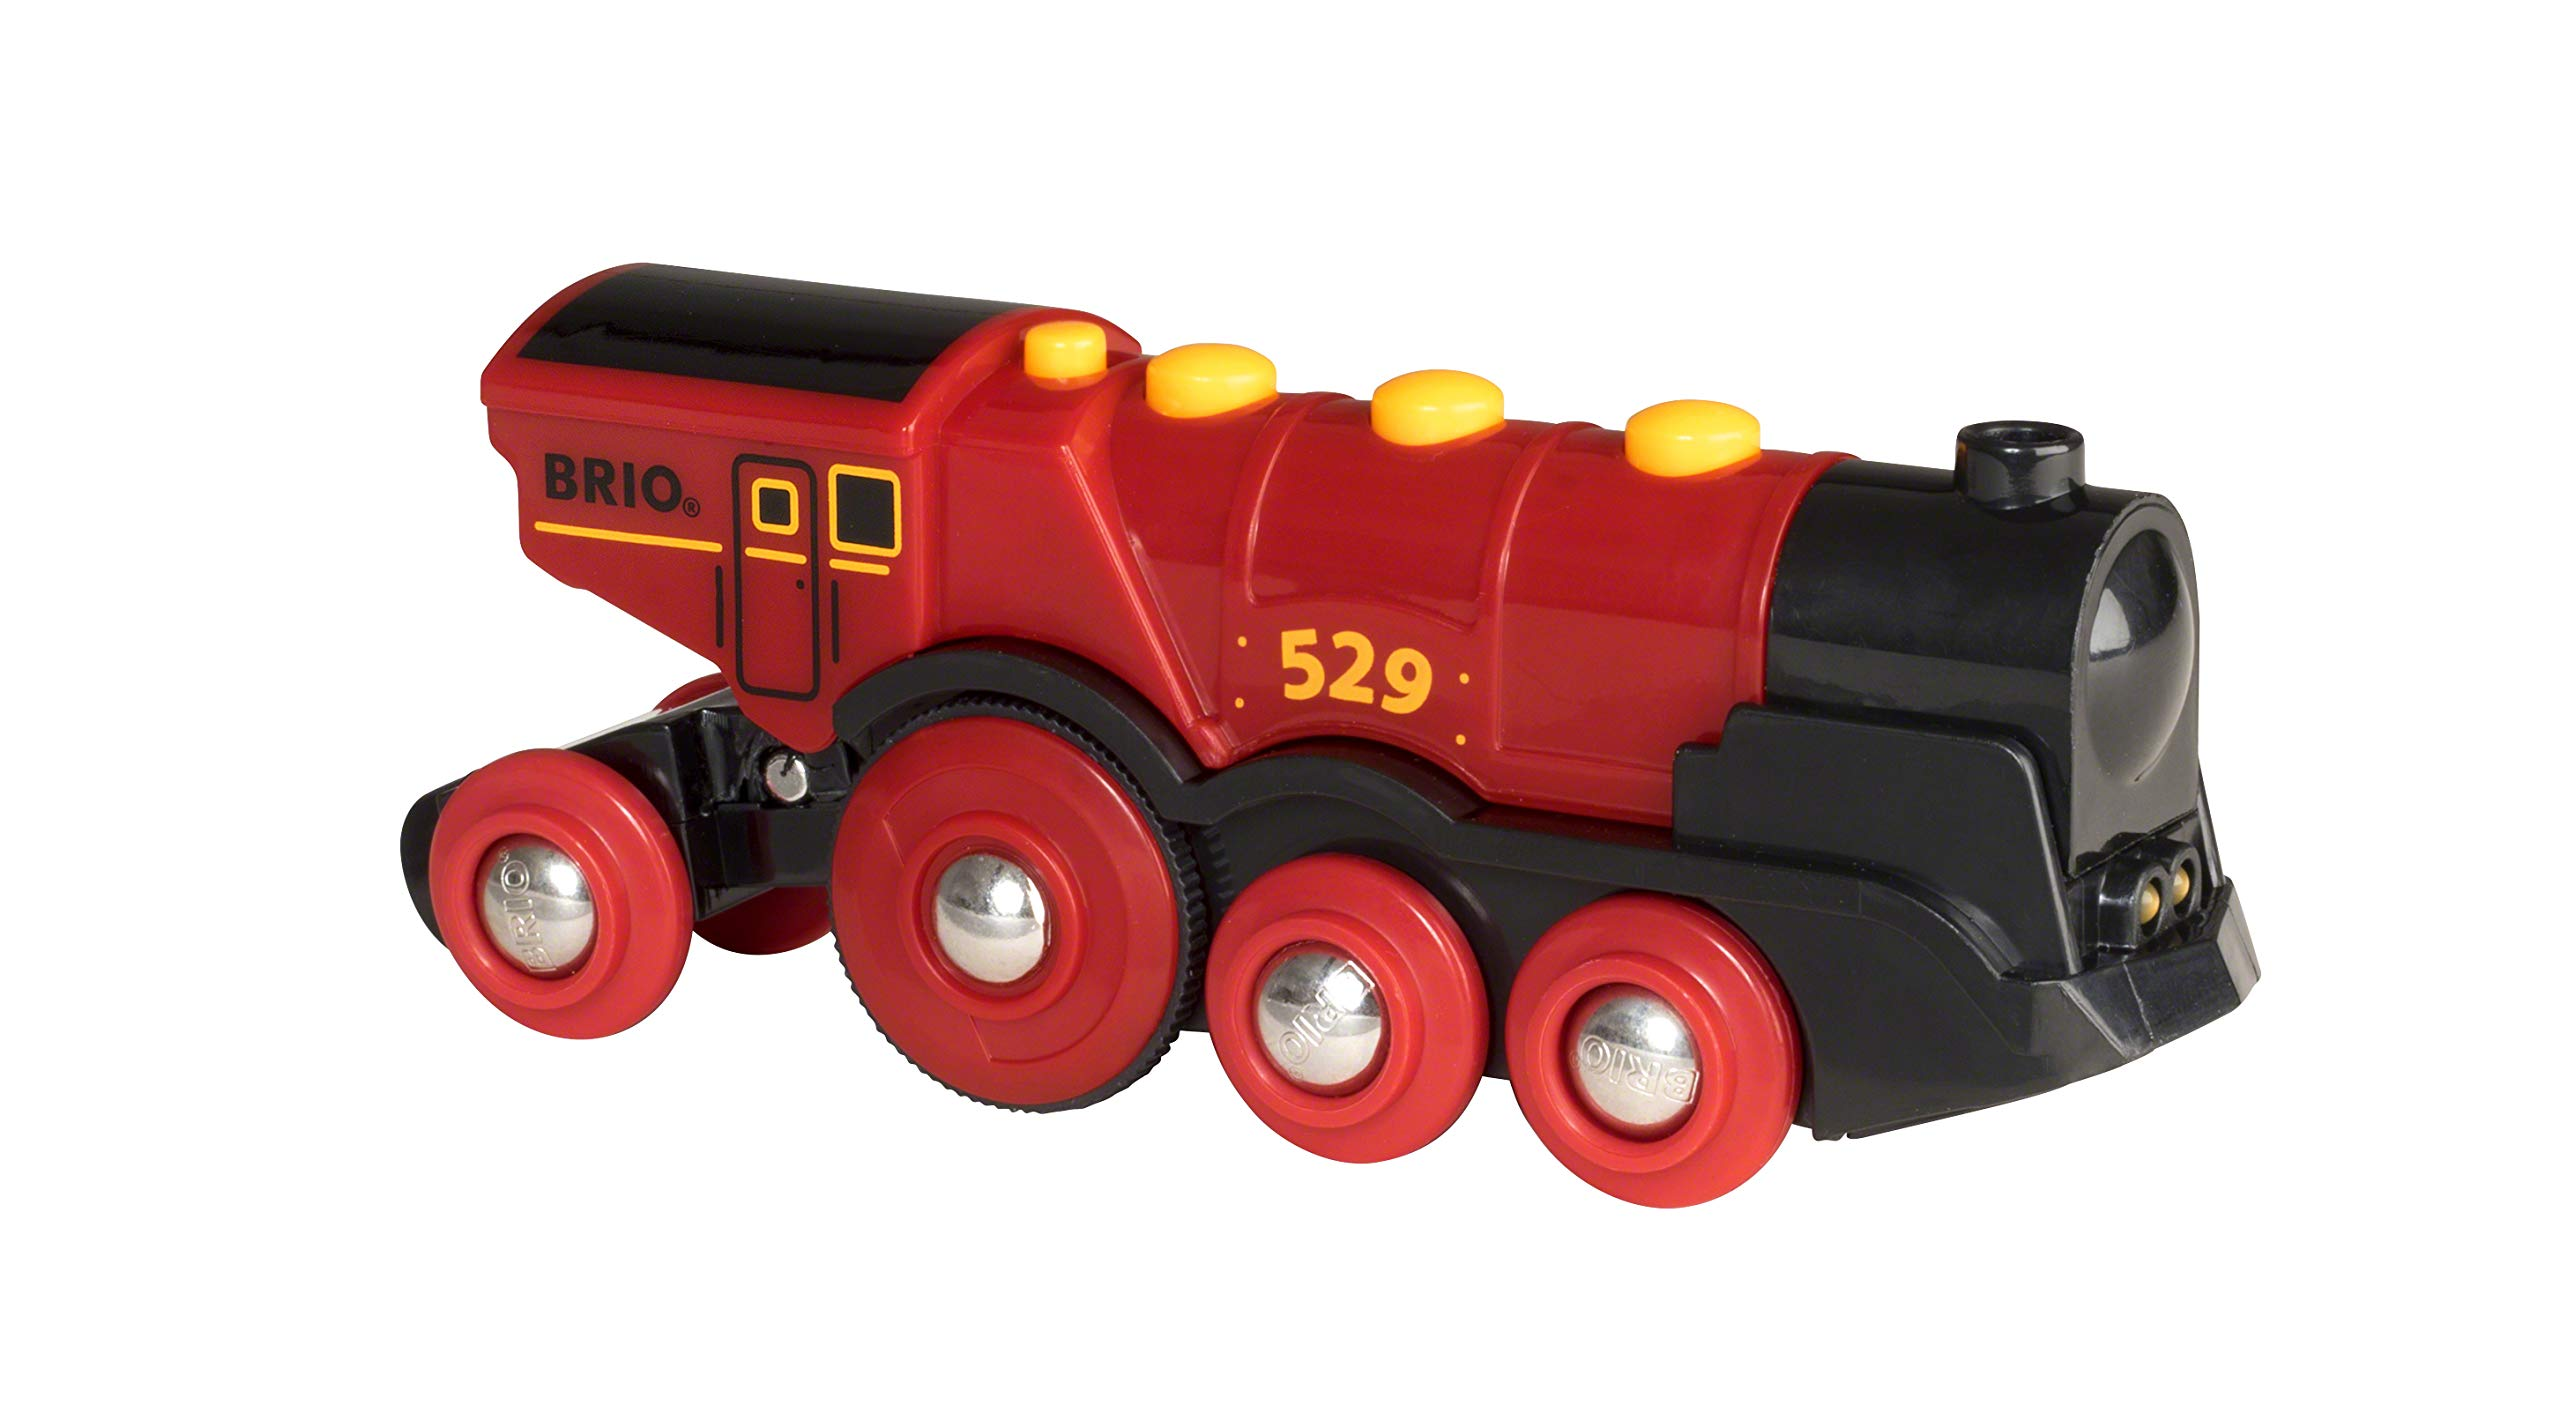 Brio World 33592 Mighty Red Action Locomotive   Battery Operated Toy Train with Light and Sound Effects for Kids Age 3 and Up